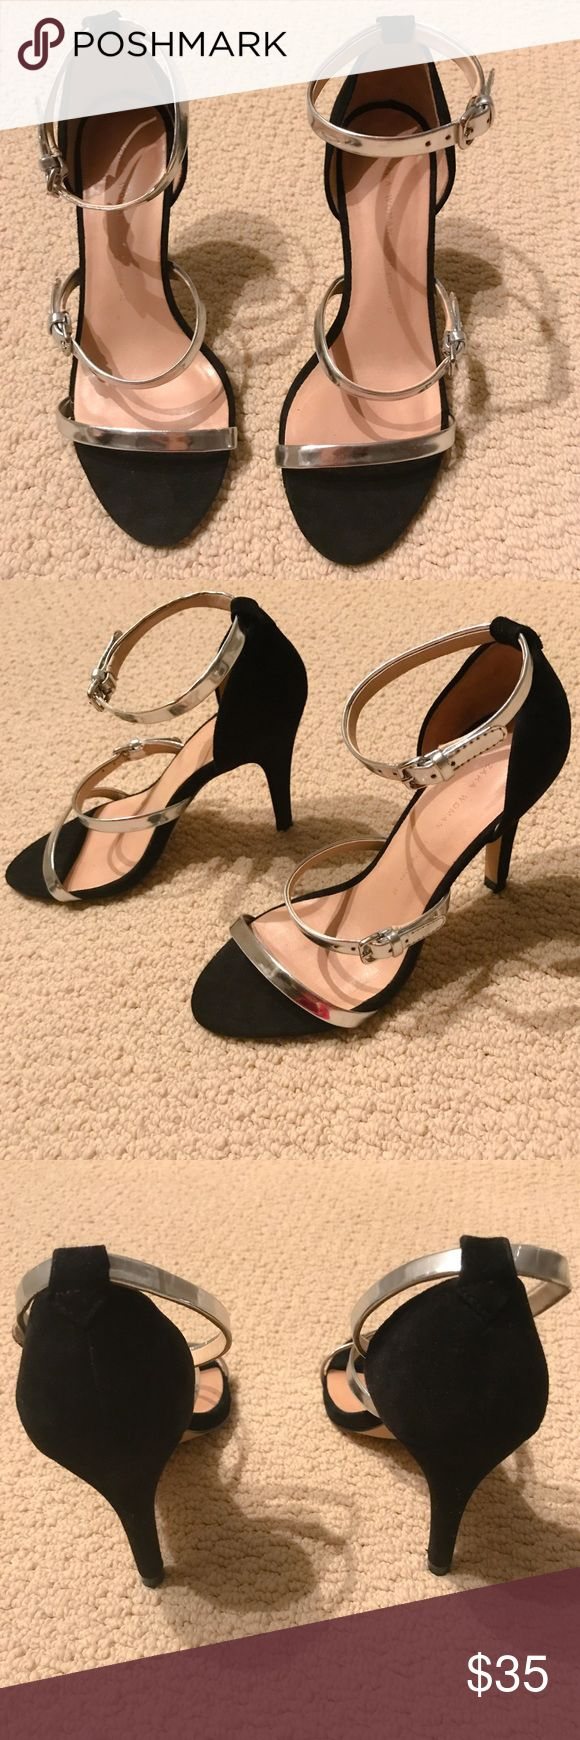 """Zara Silver & Black Strappy Sandal Black Suede and Silver Strappy Heels. Great with jeans or with a dress for a night out. Perfect pair for date night. Worn once to a birthday bash for 3hrs. In great condition! Heel height approx 3""""  Zara Shoes Sandals"""